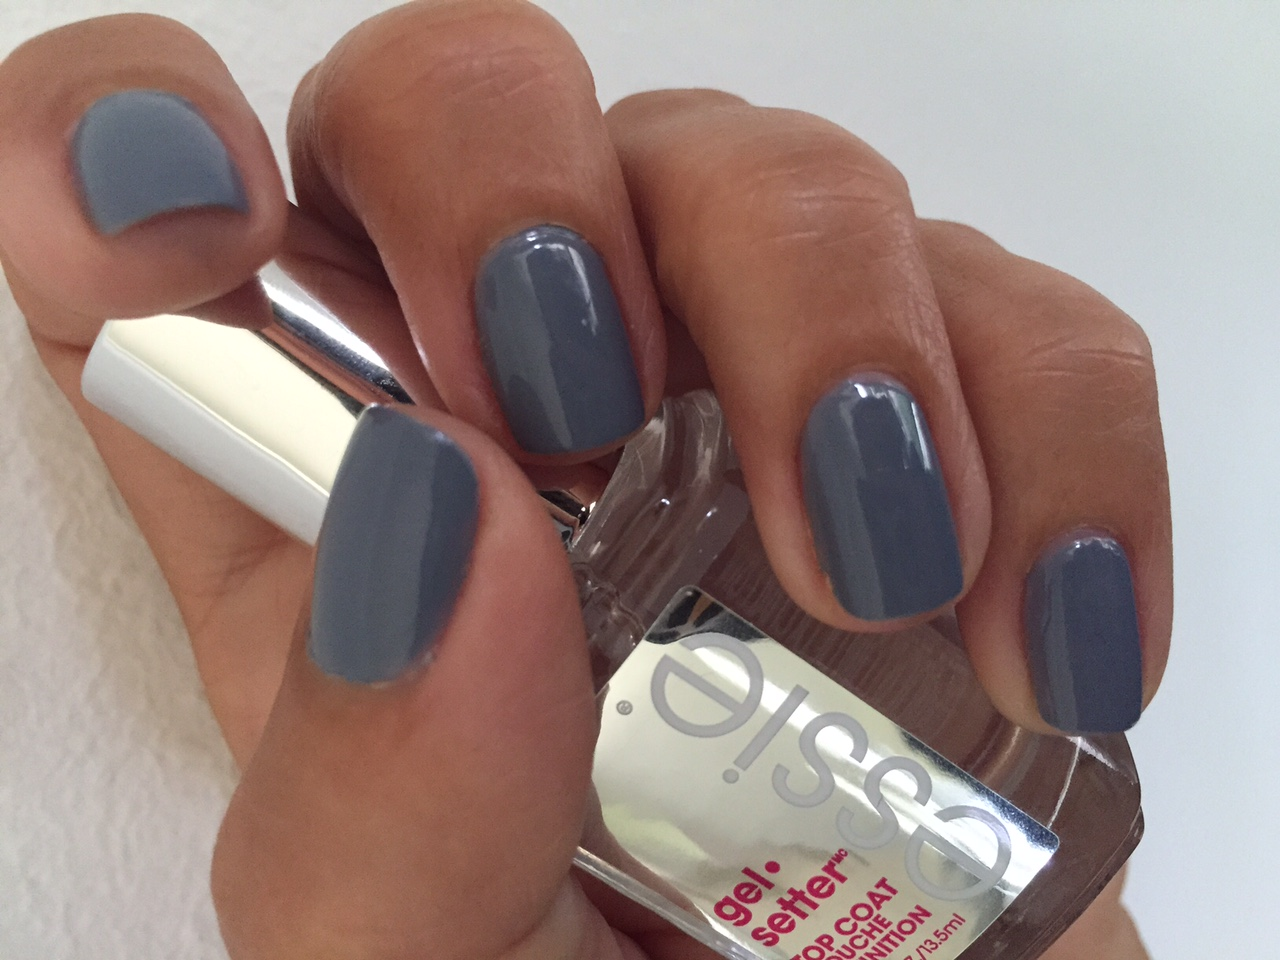 Mani Monday: Get the Look of a Shiny Gel Manicure with this Top Coat ...